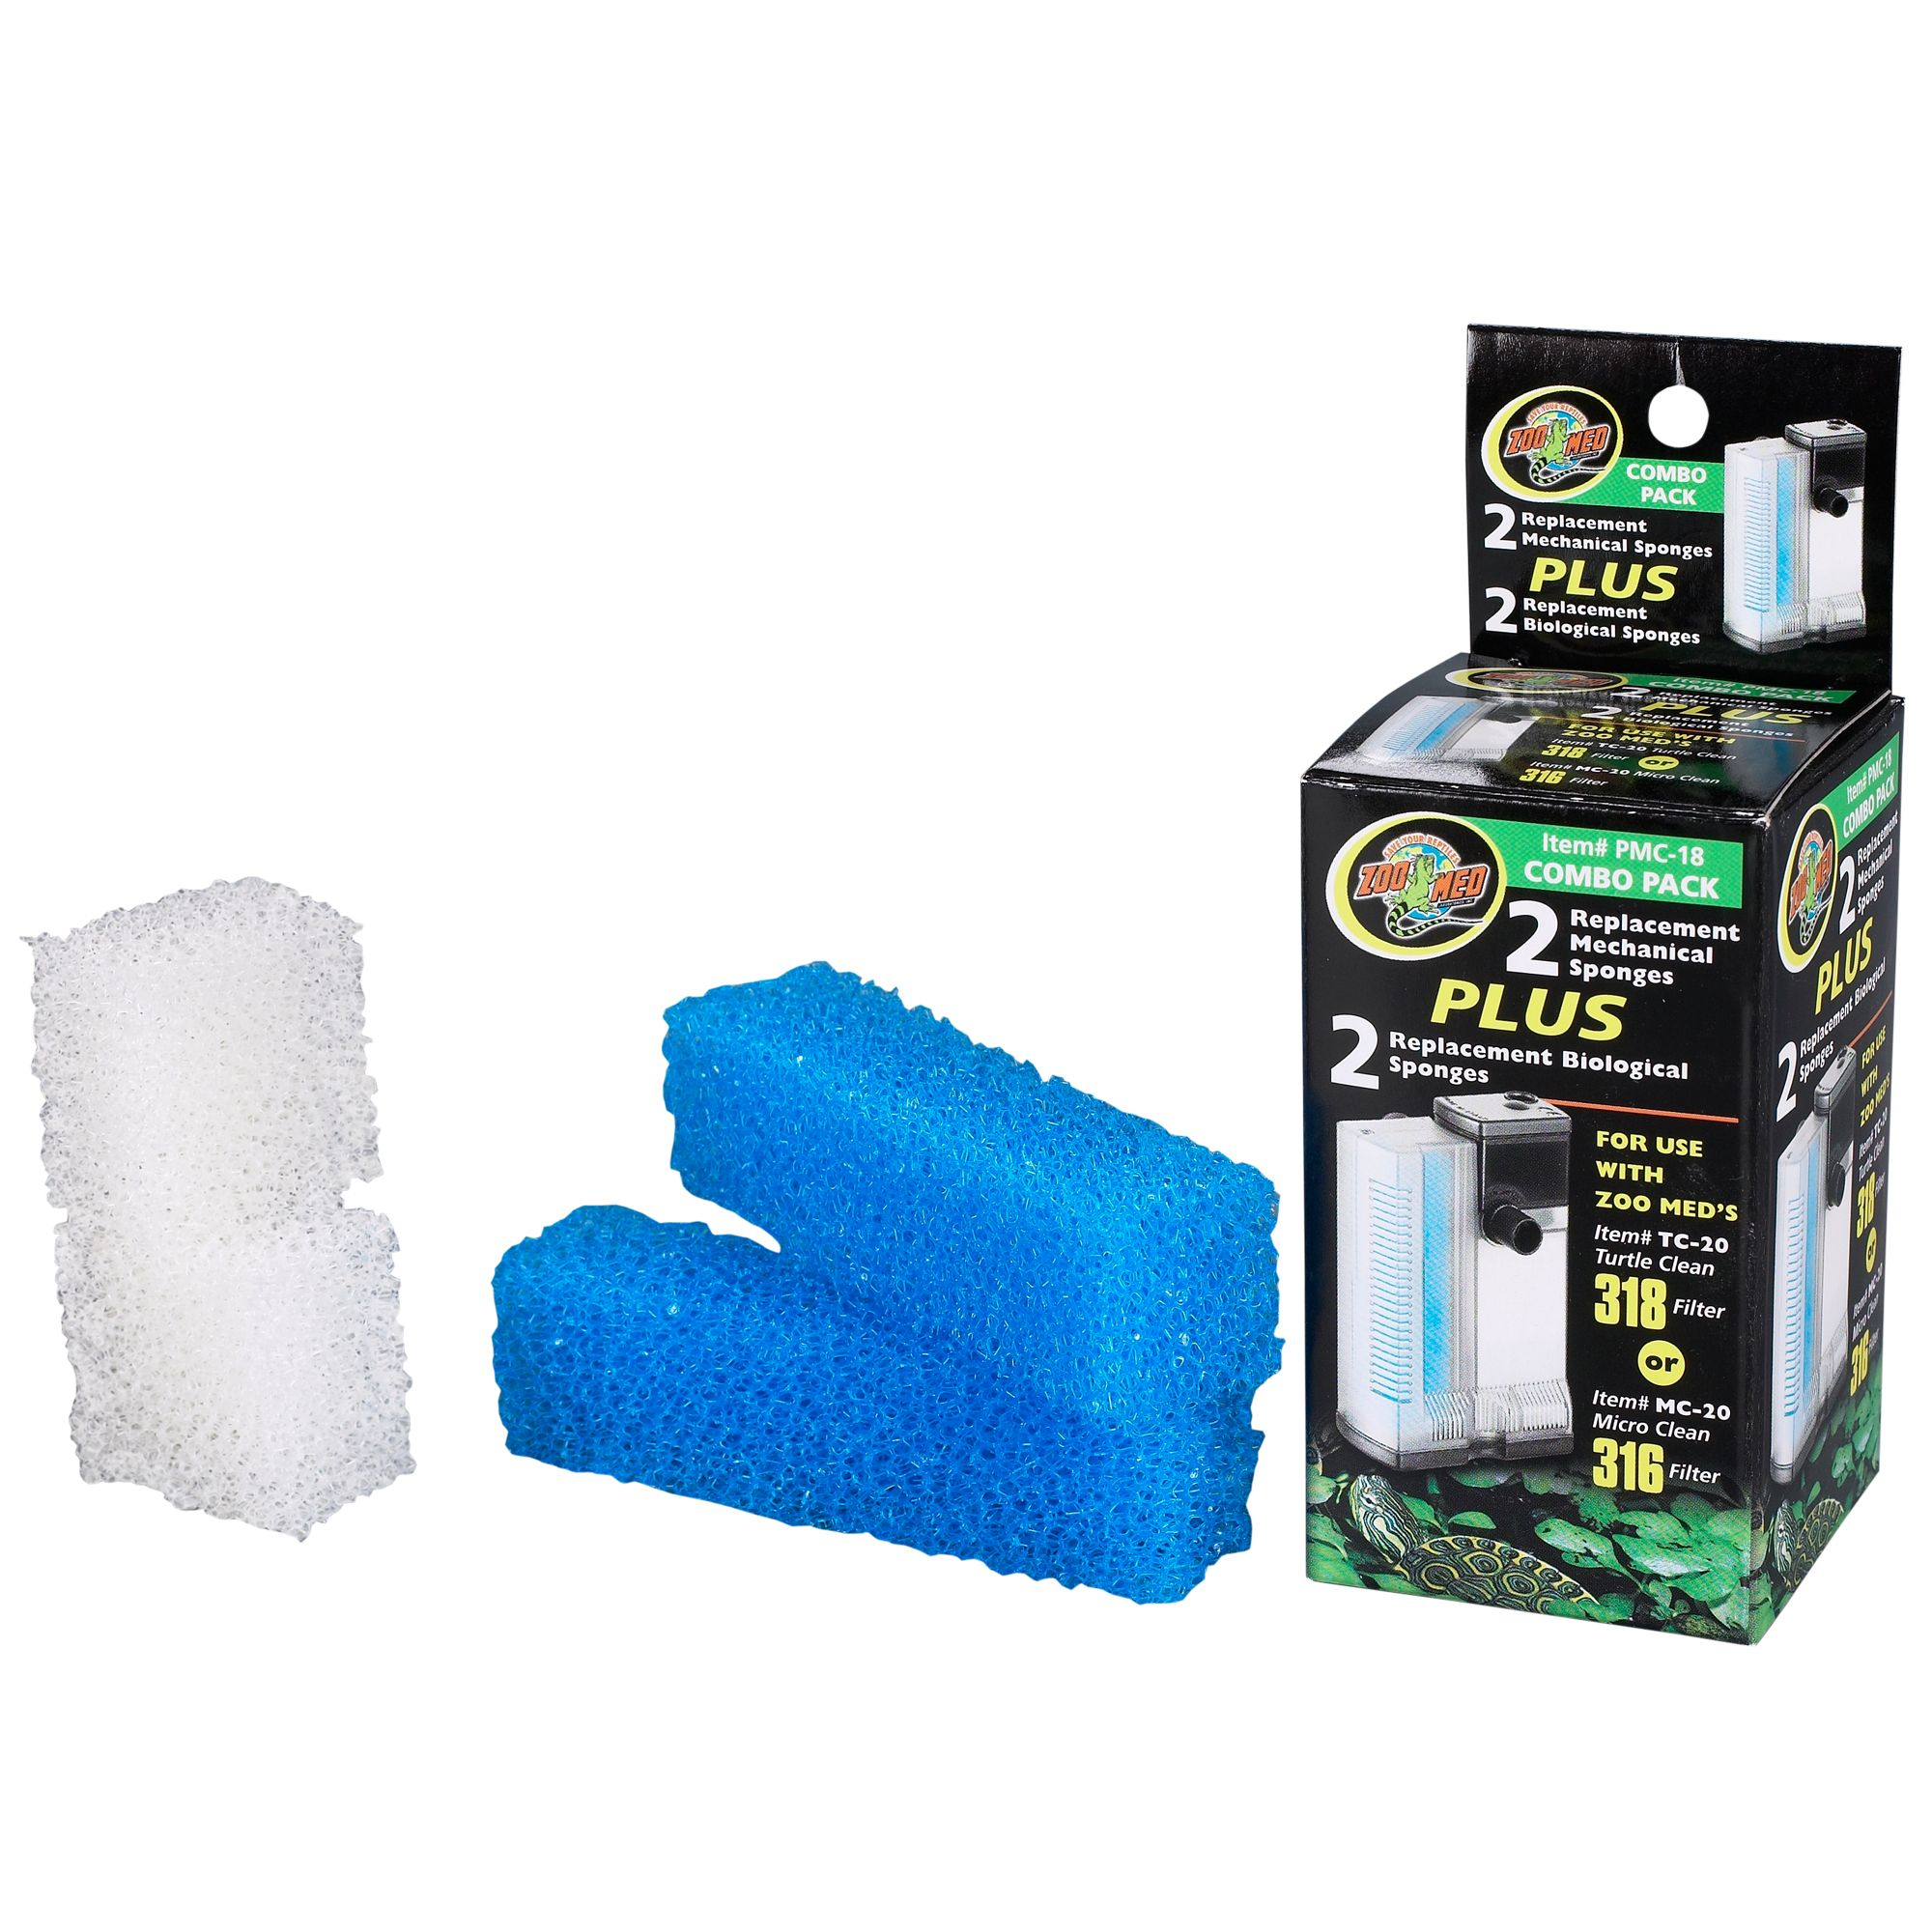 Zoo Med 316 And 318 Filter Combo Pack Replacement Sponges